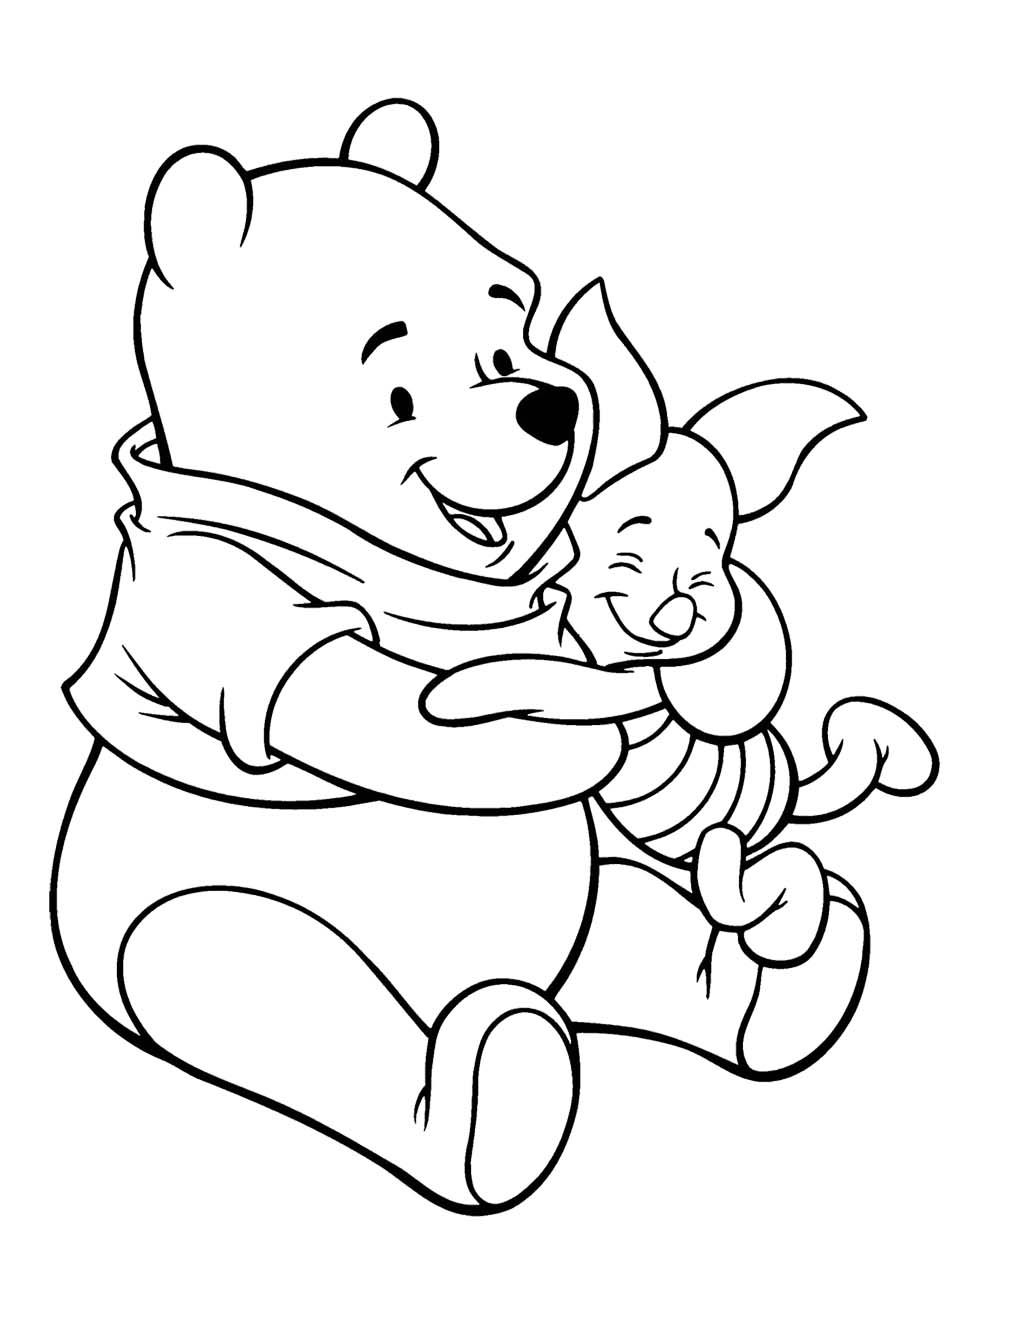 Winnie The Pooh Care With Piglet Coloring Page Bears Teckningar Nalle Puh Farglaggningssidor